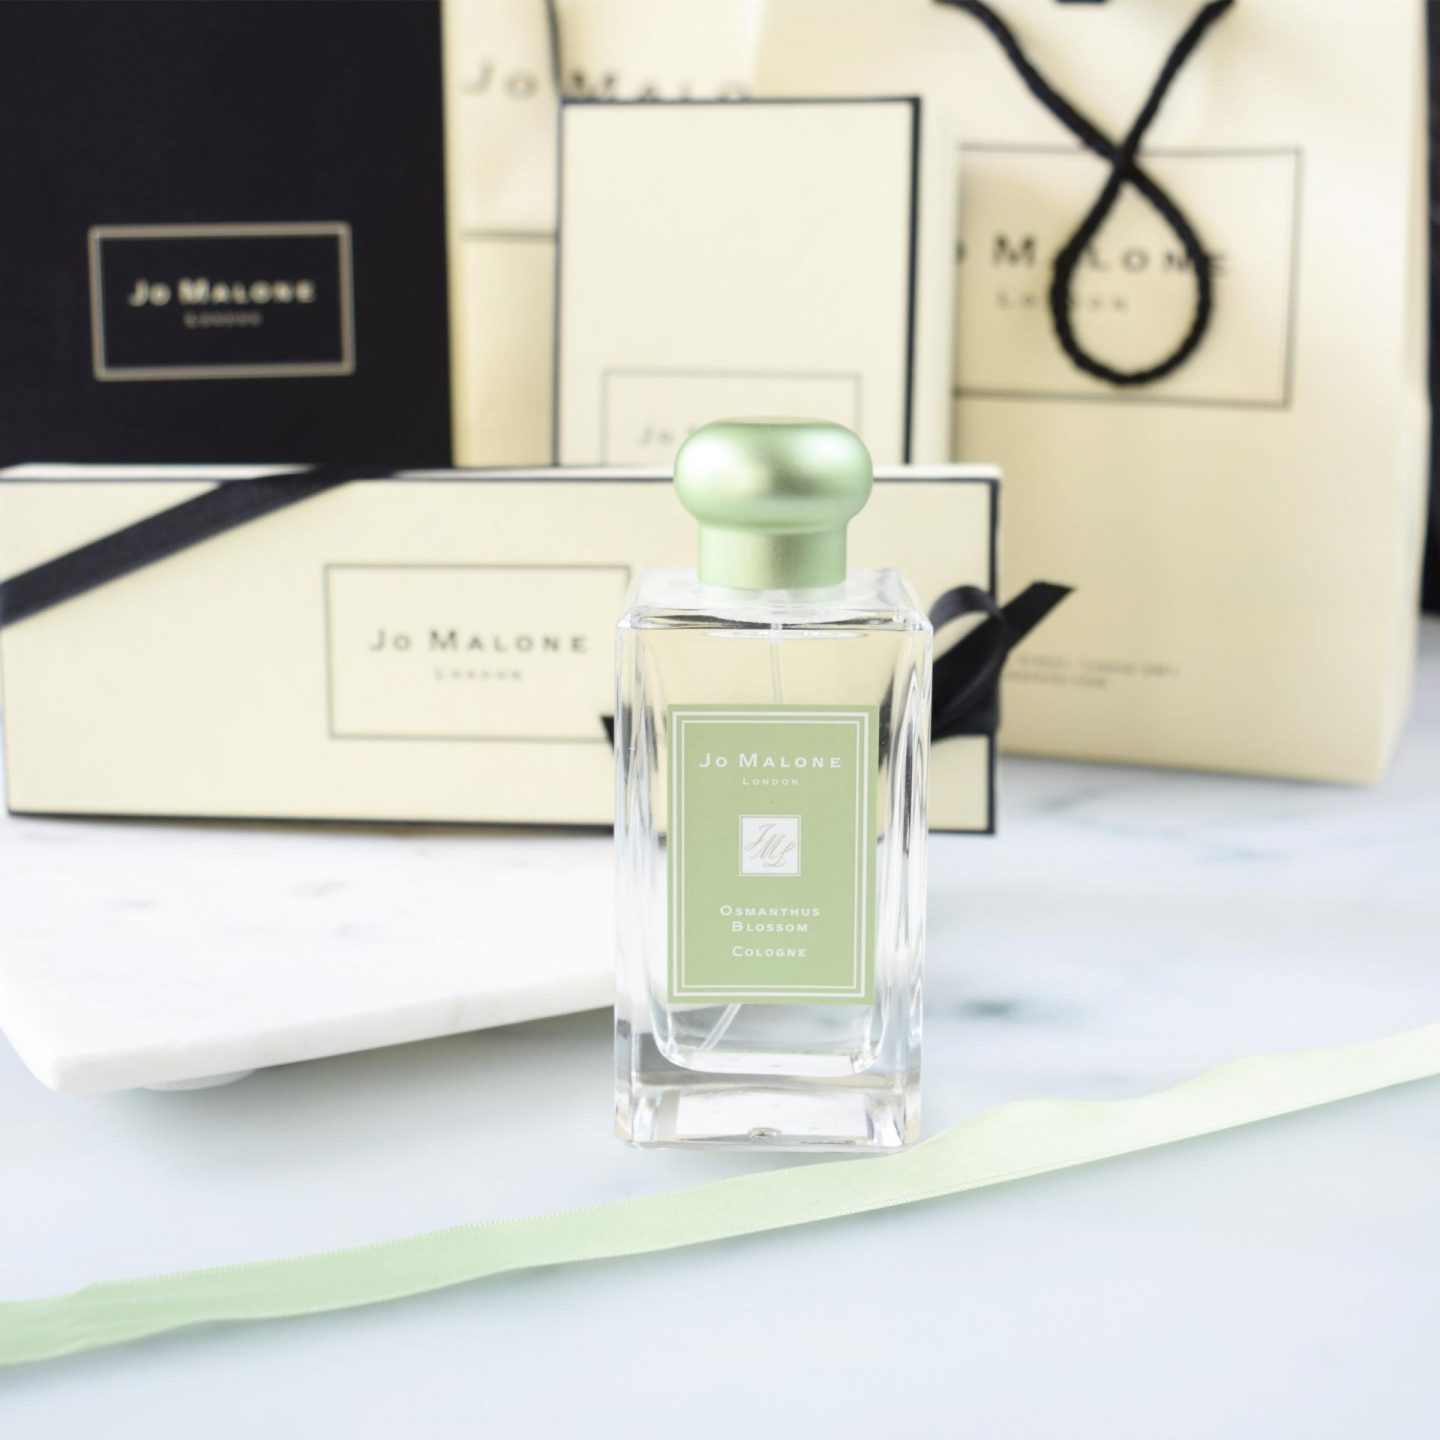 Jo Malone Osmanthus Blossom Review